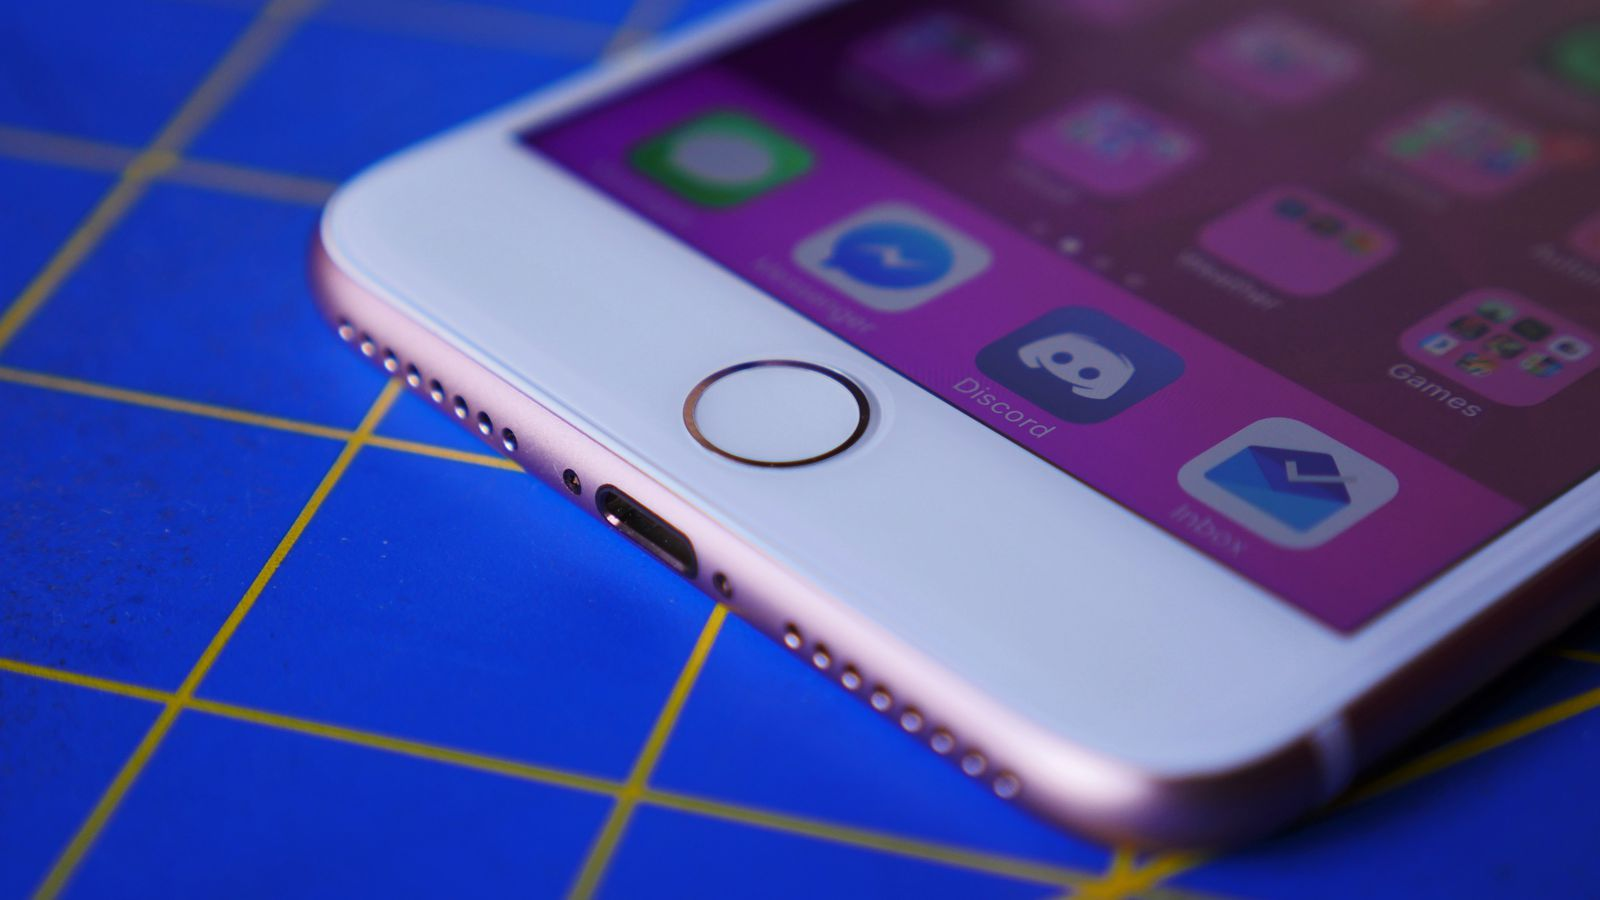 There's a software workaround if your iPhone 7's home button fails